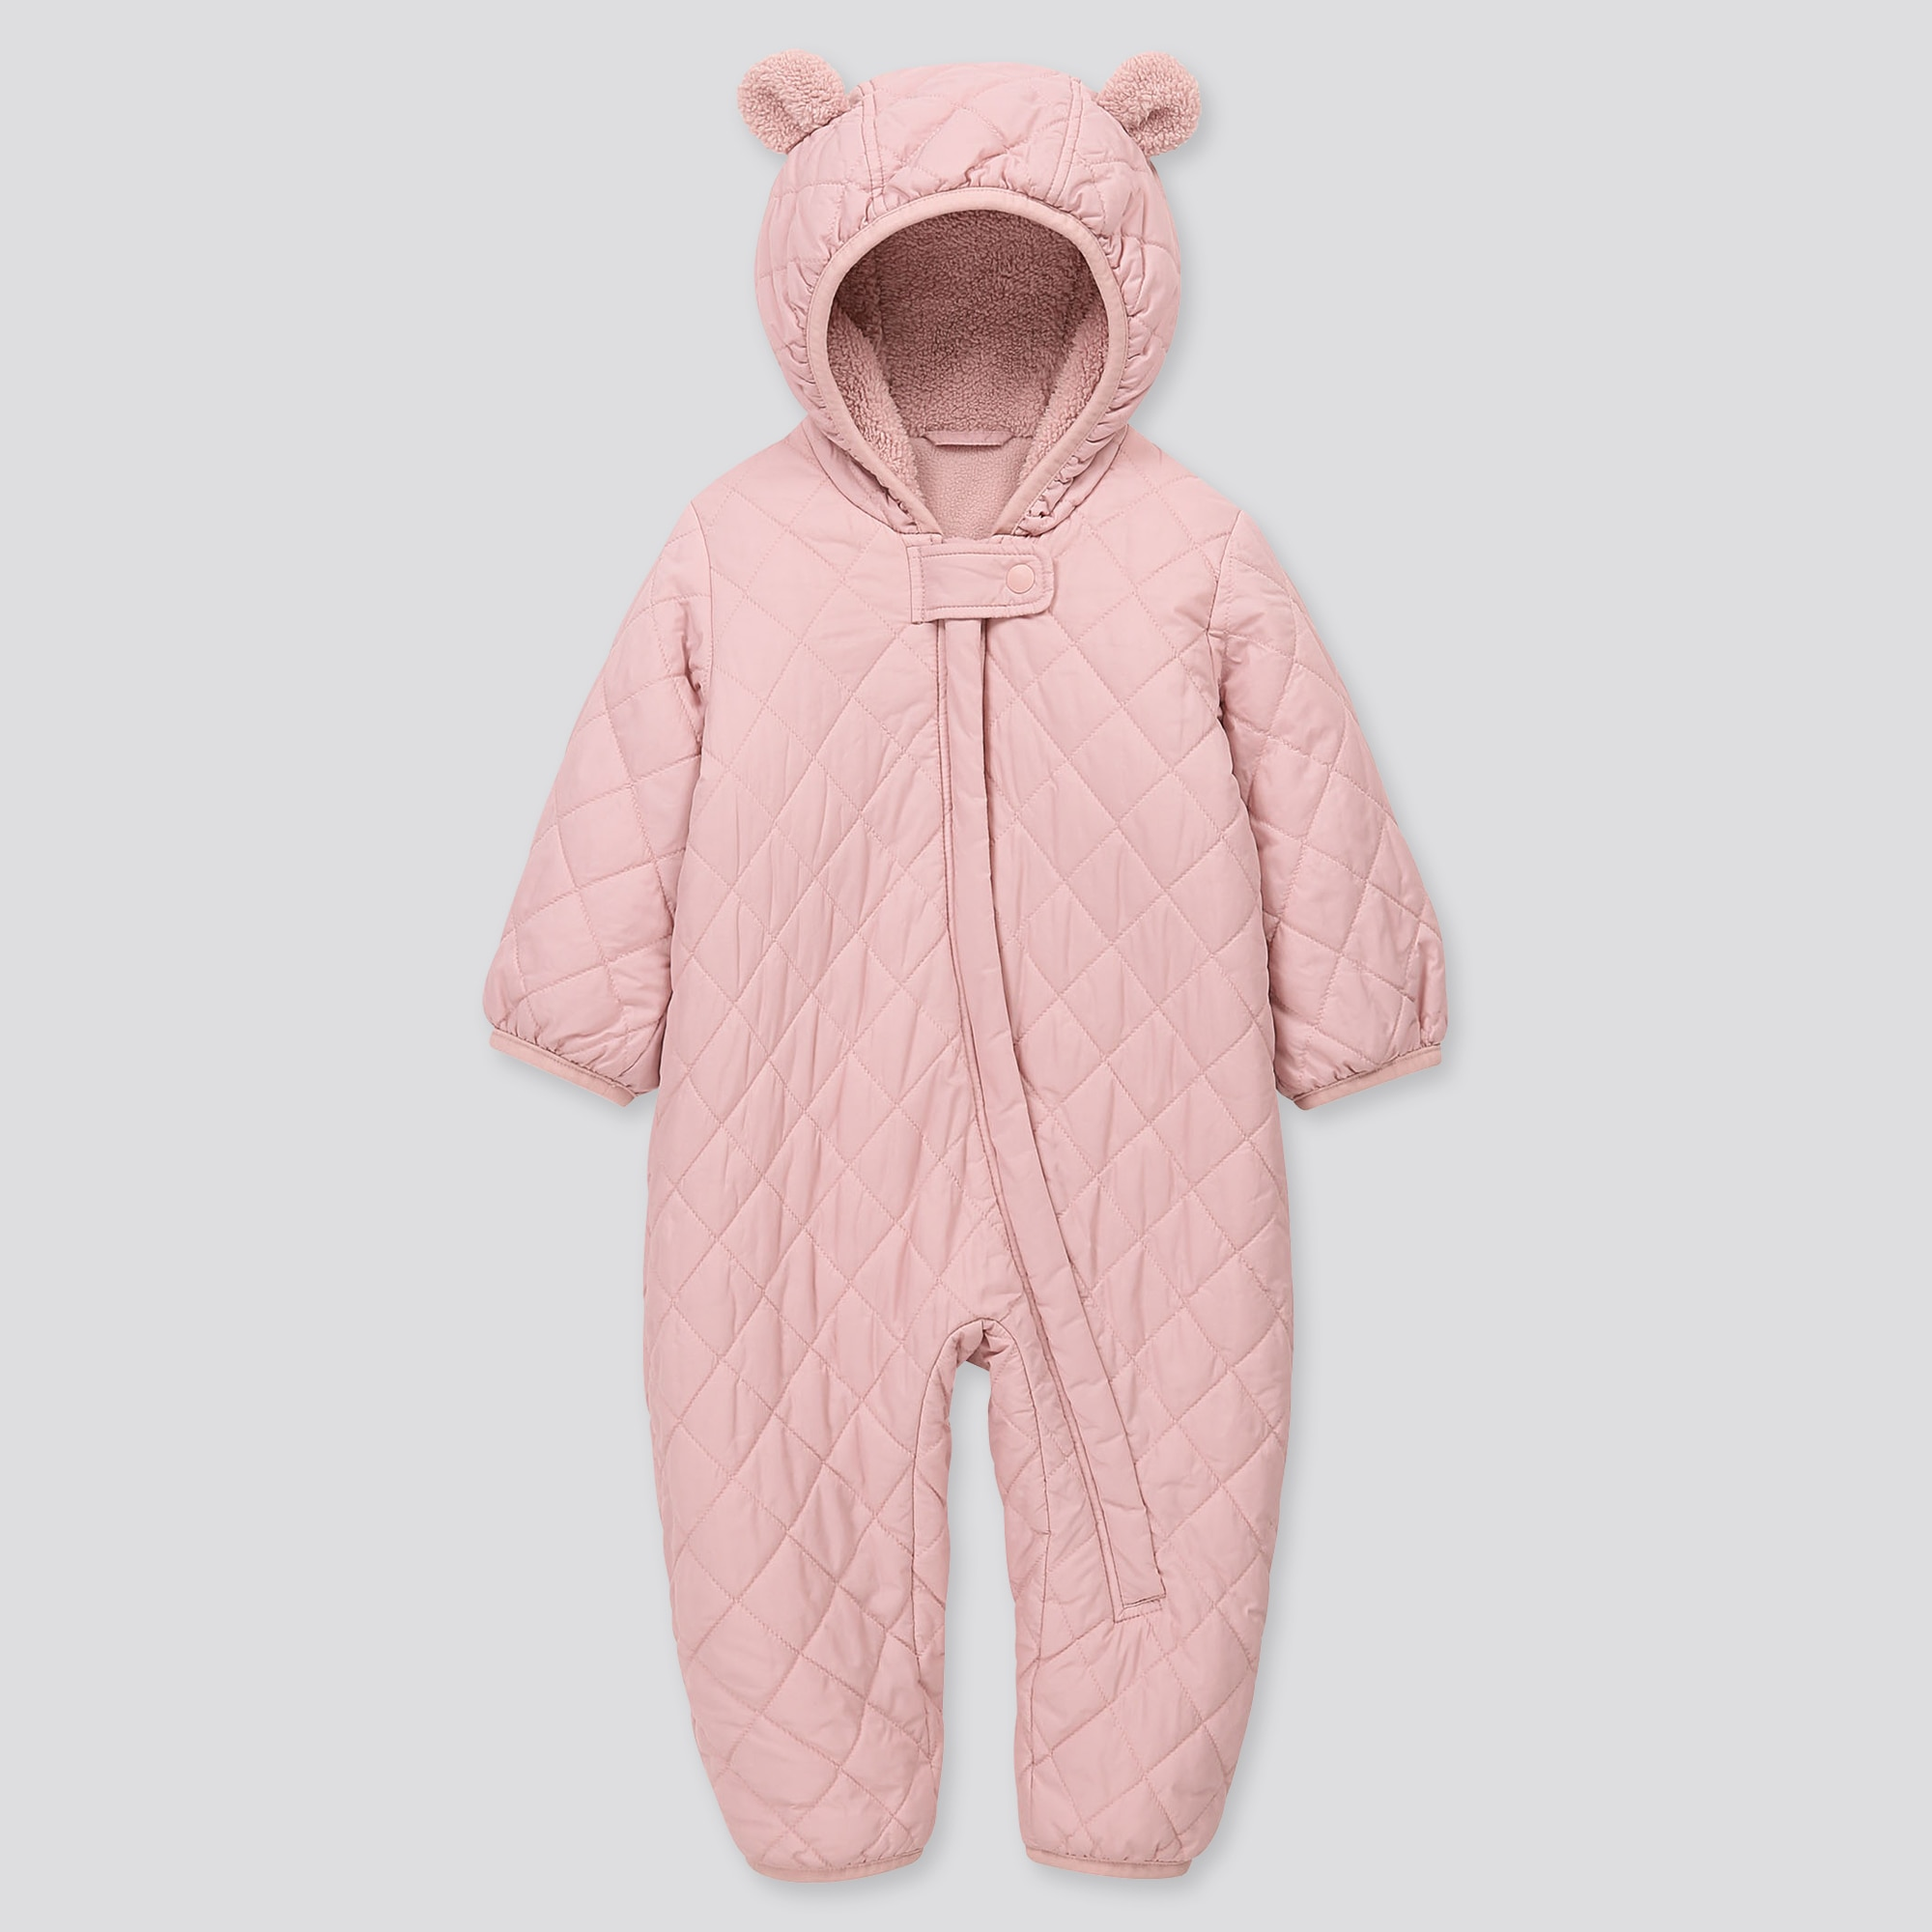 NEWBORN WARM PADDED LONG-SLEEVE ONE PIECE OUTFIT